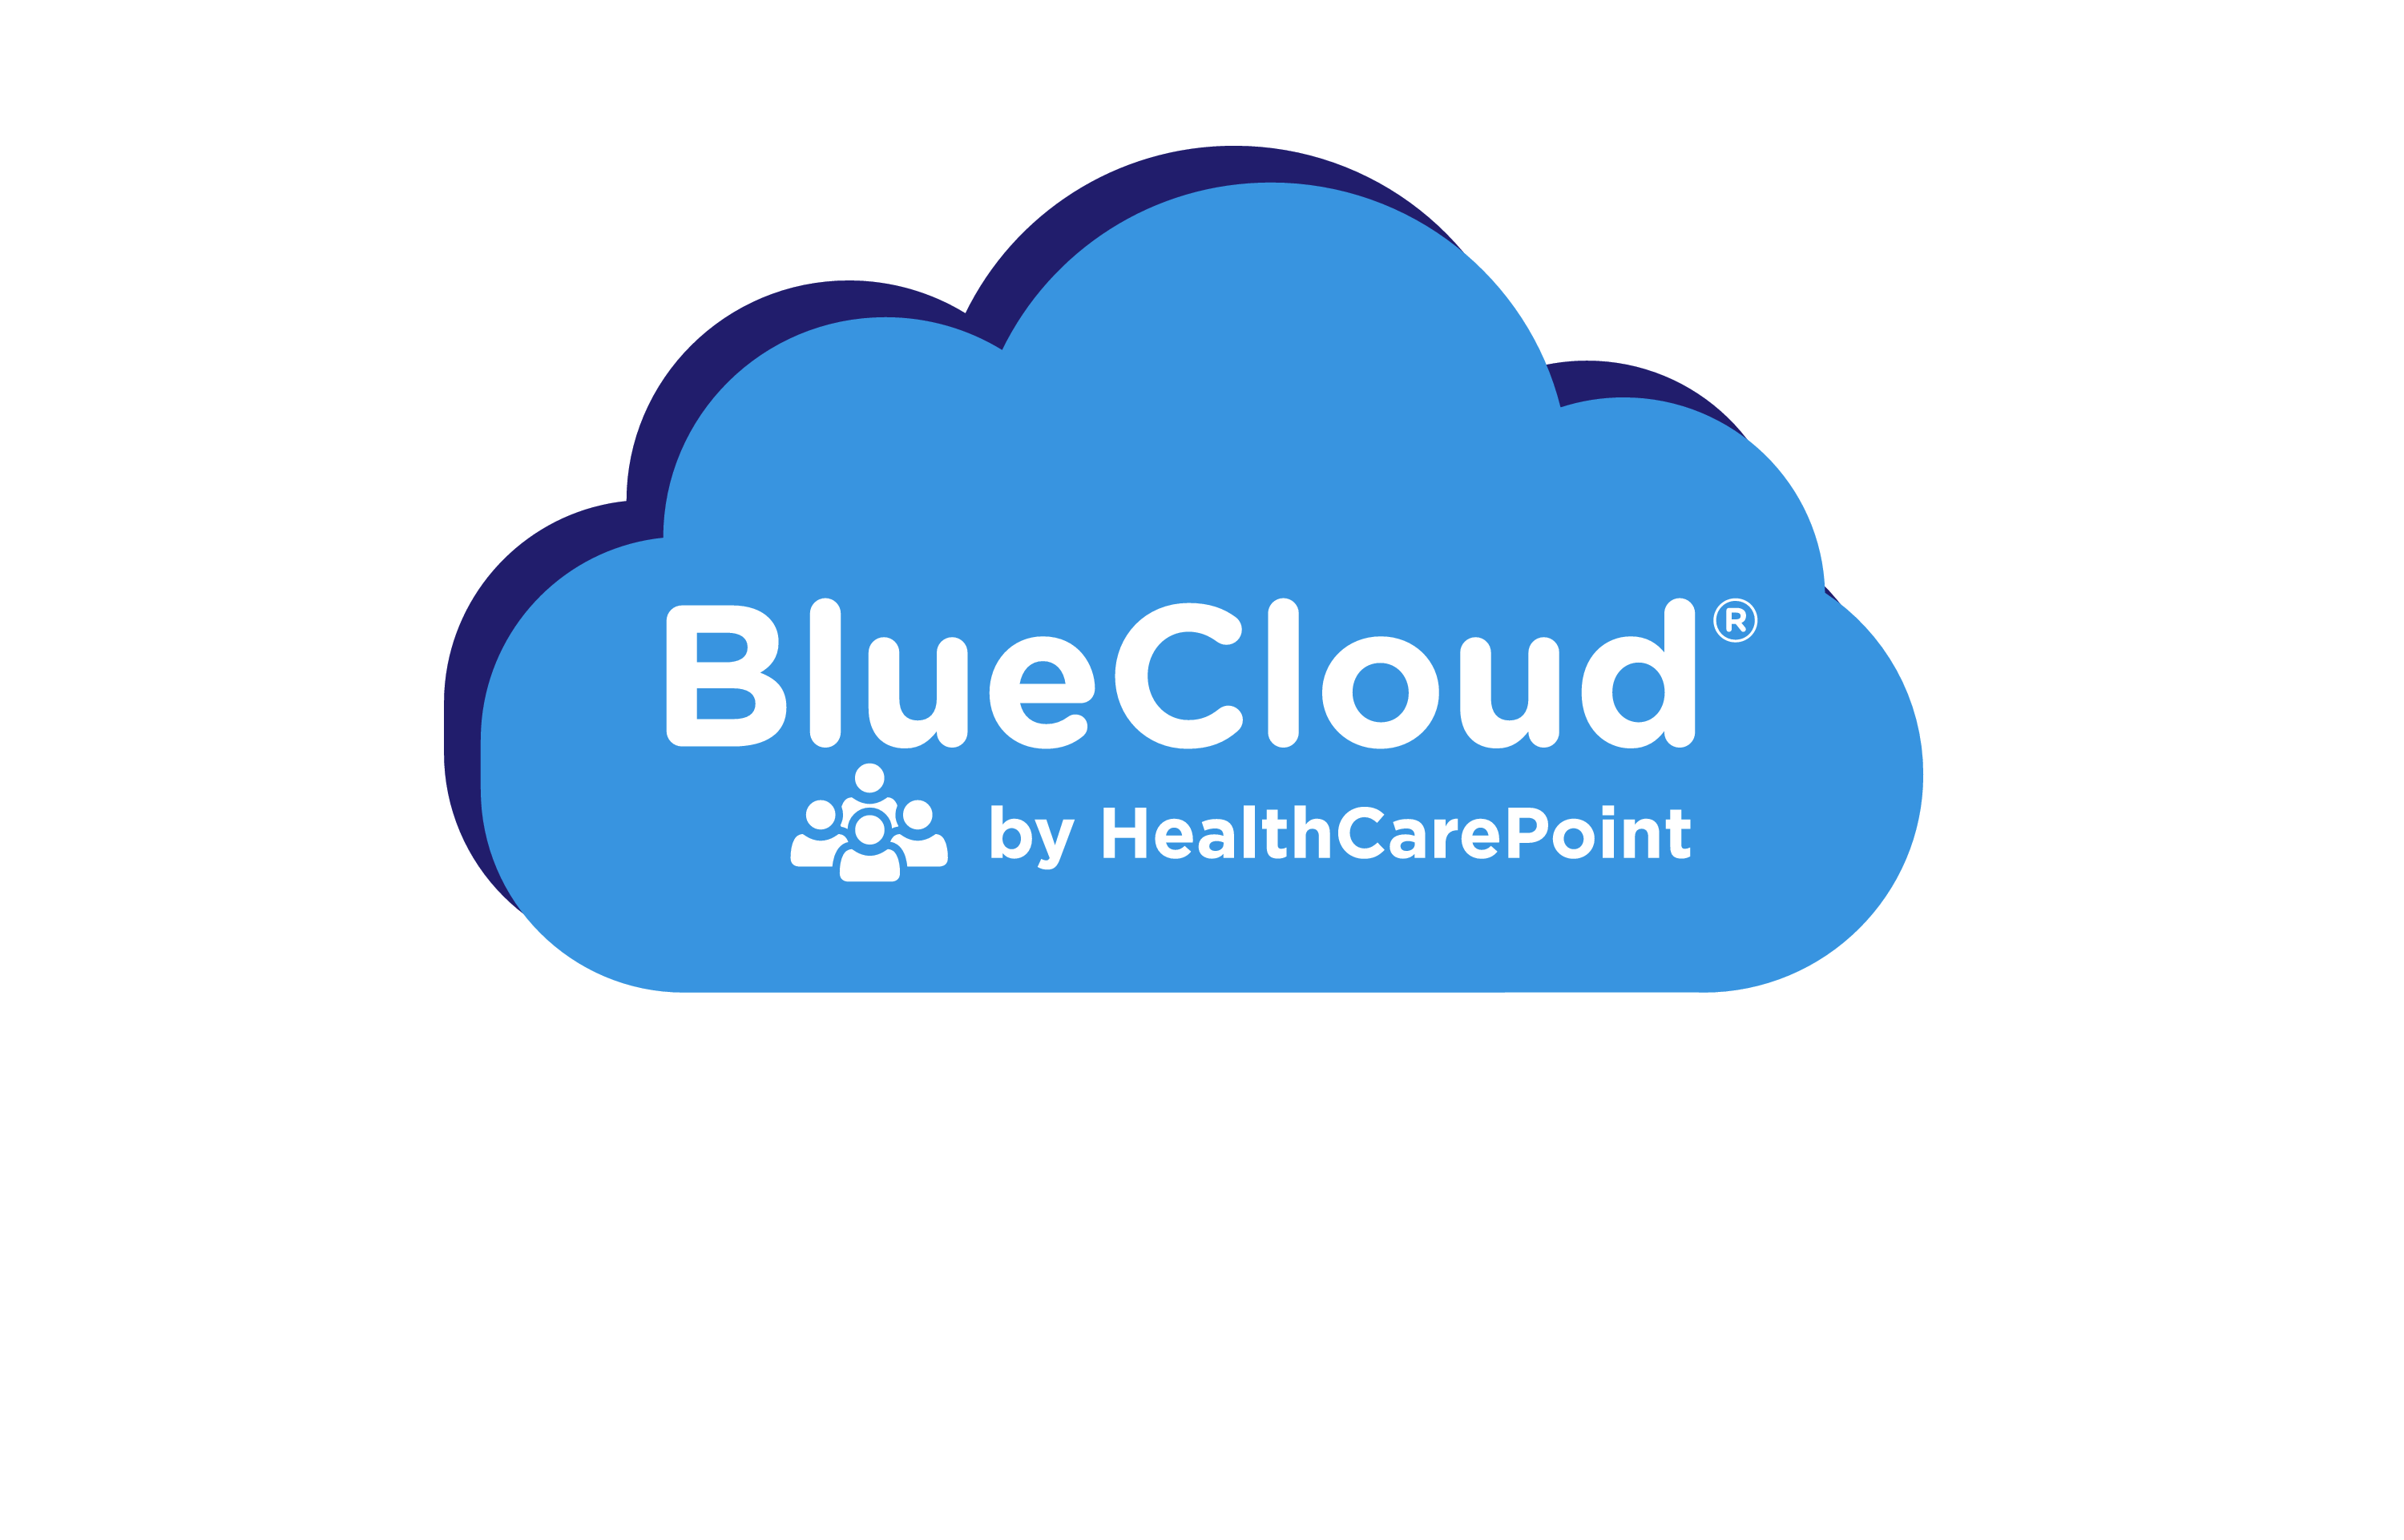 BlueCloud® by HealthCarePoint